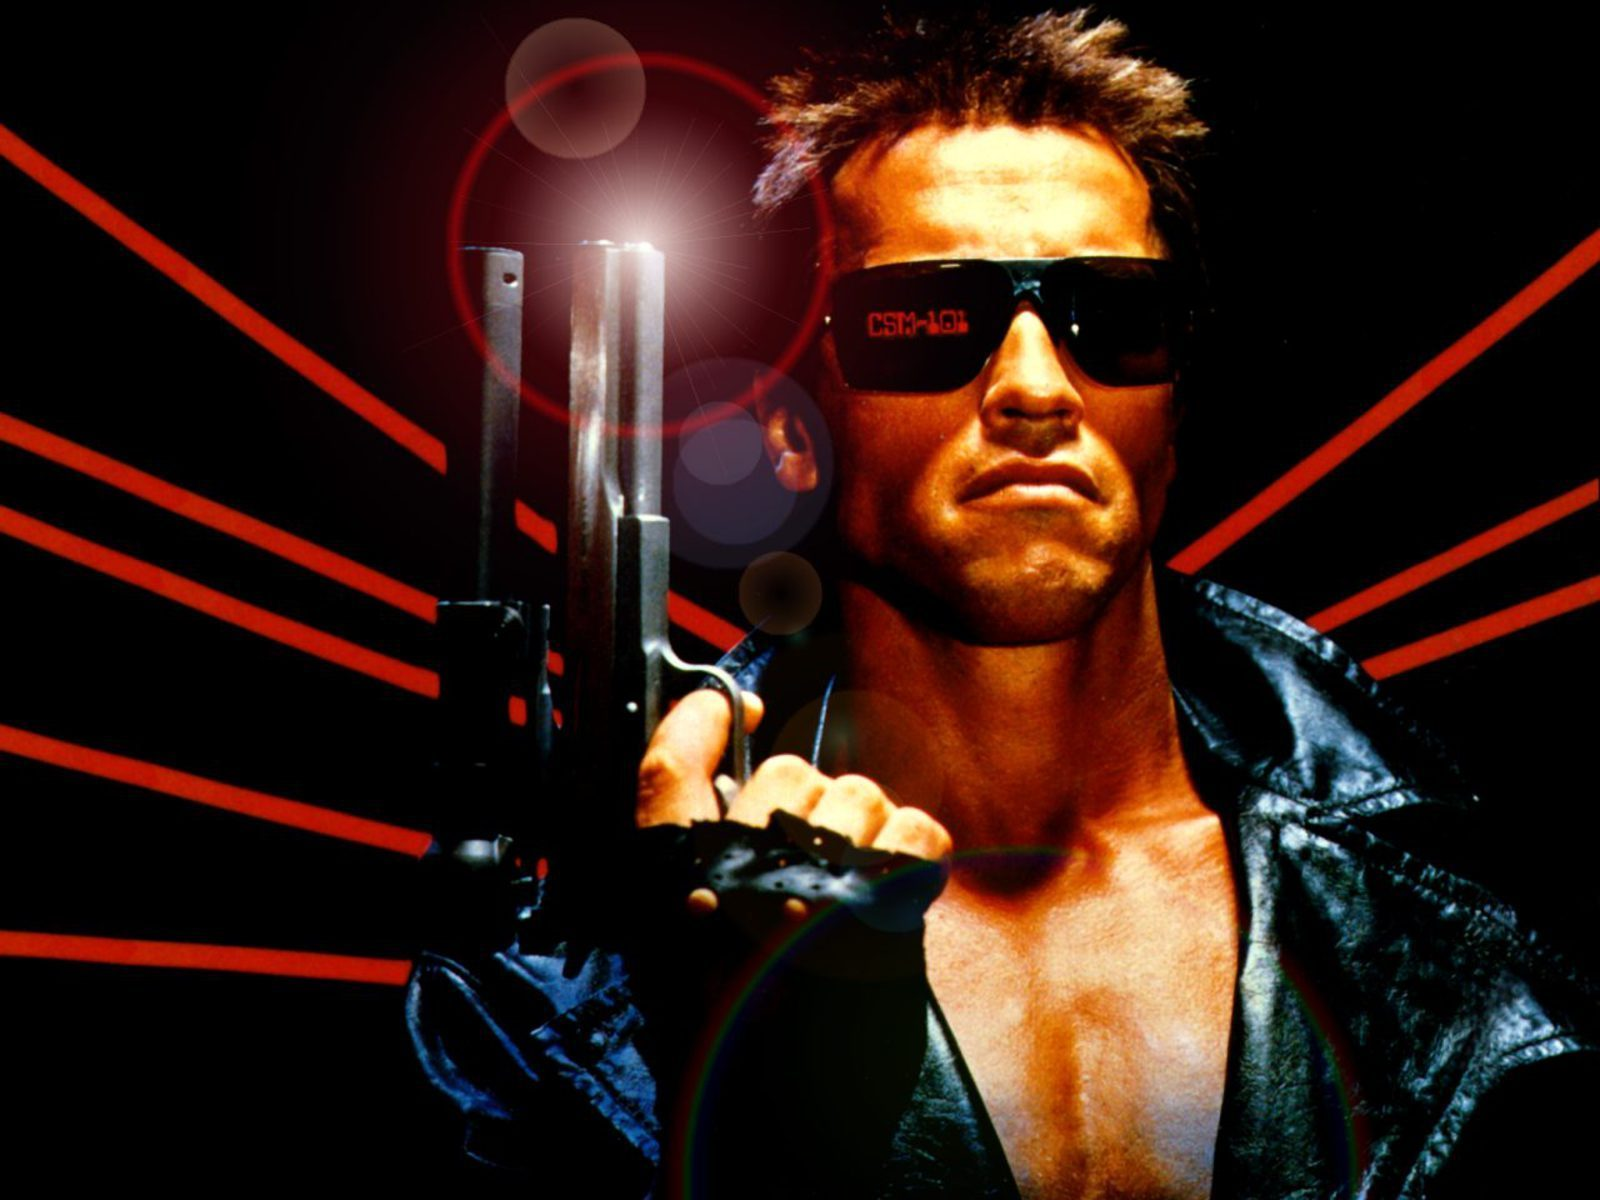 The Terminator - best villains